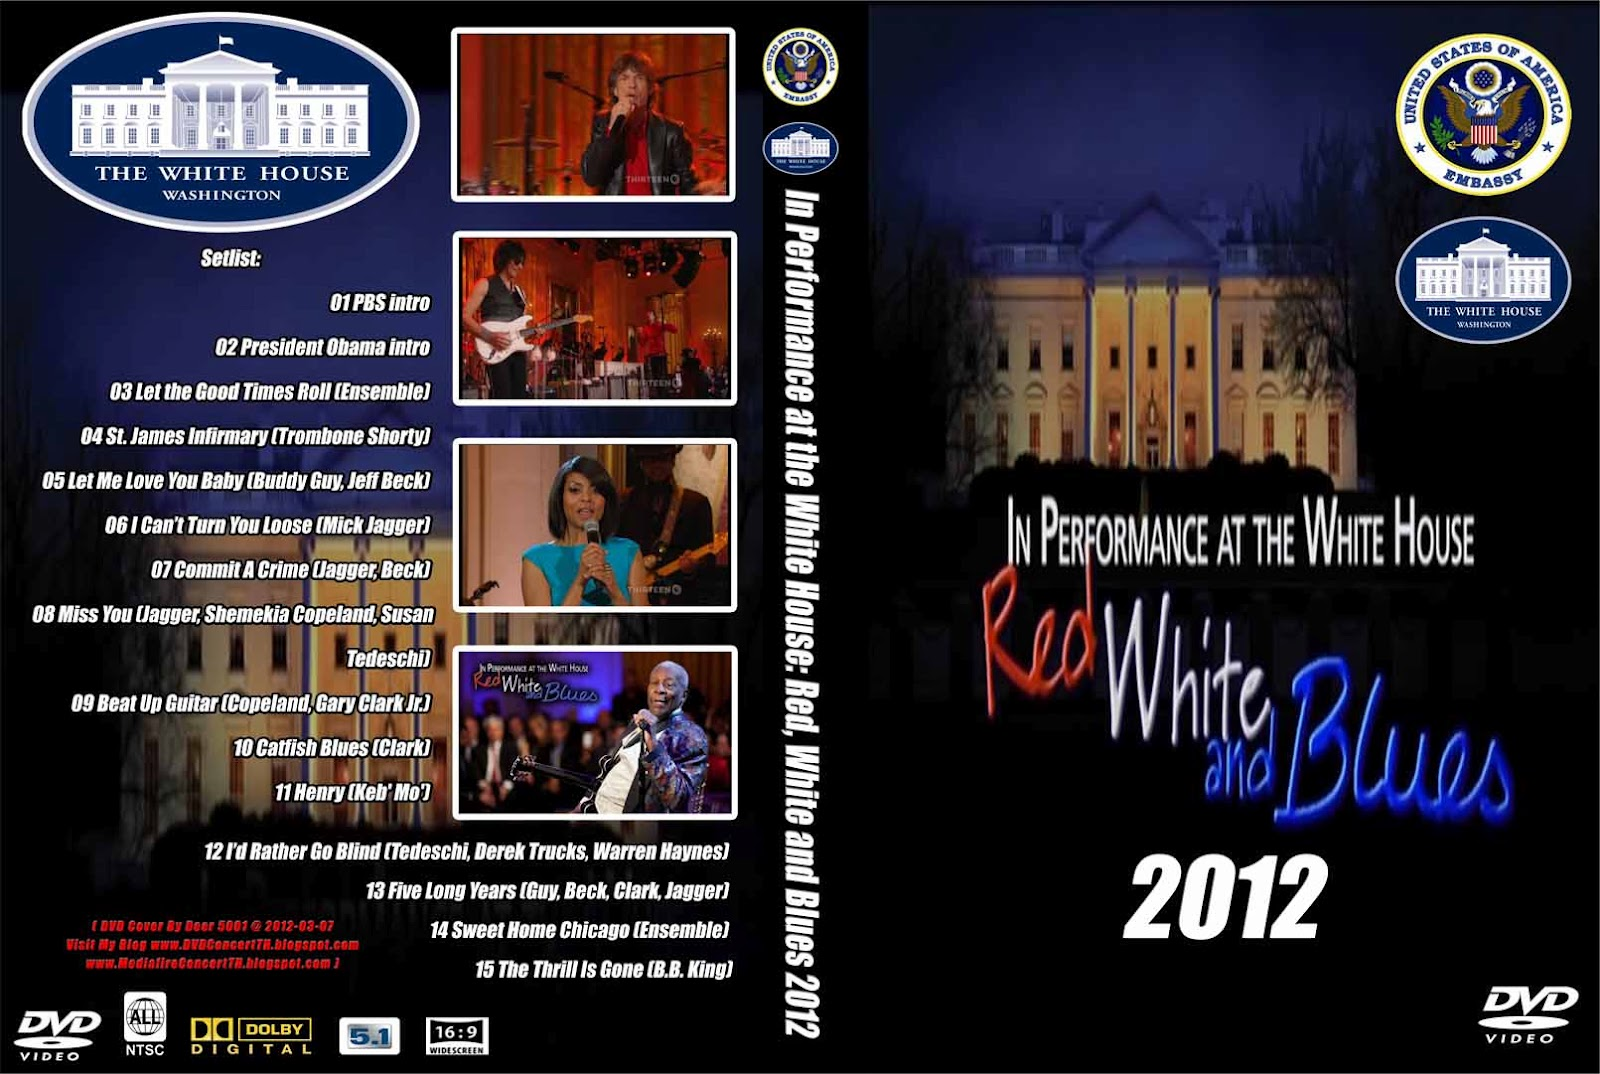 Mediafireconcertth In Performance At The White House Red White